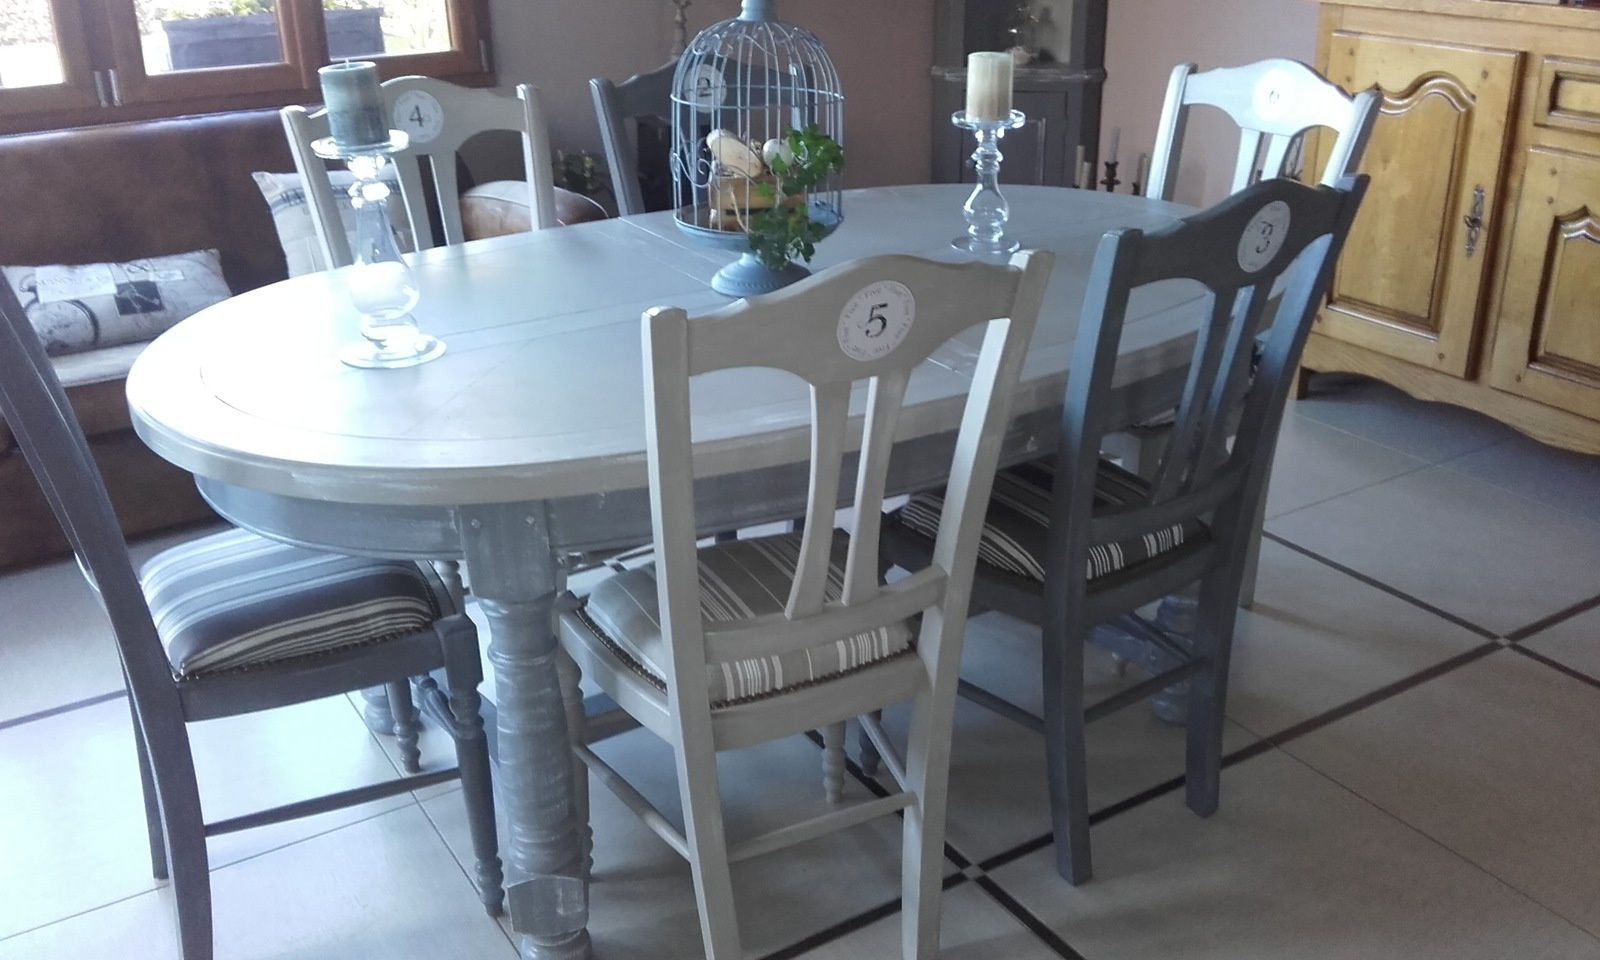 Table de salle manger couleur taupe et gris anthracite charme et patines - Table a manger taupe ...